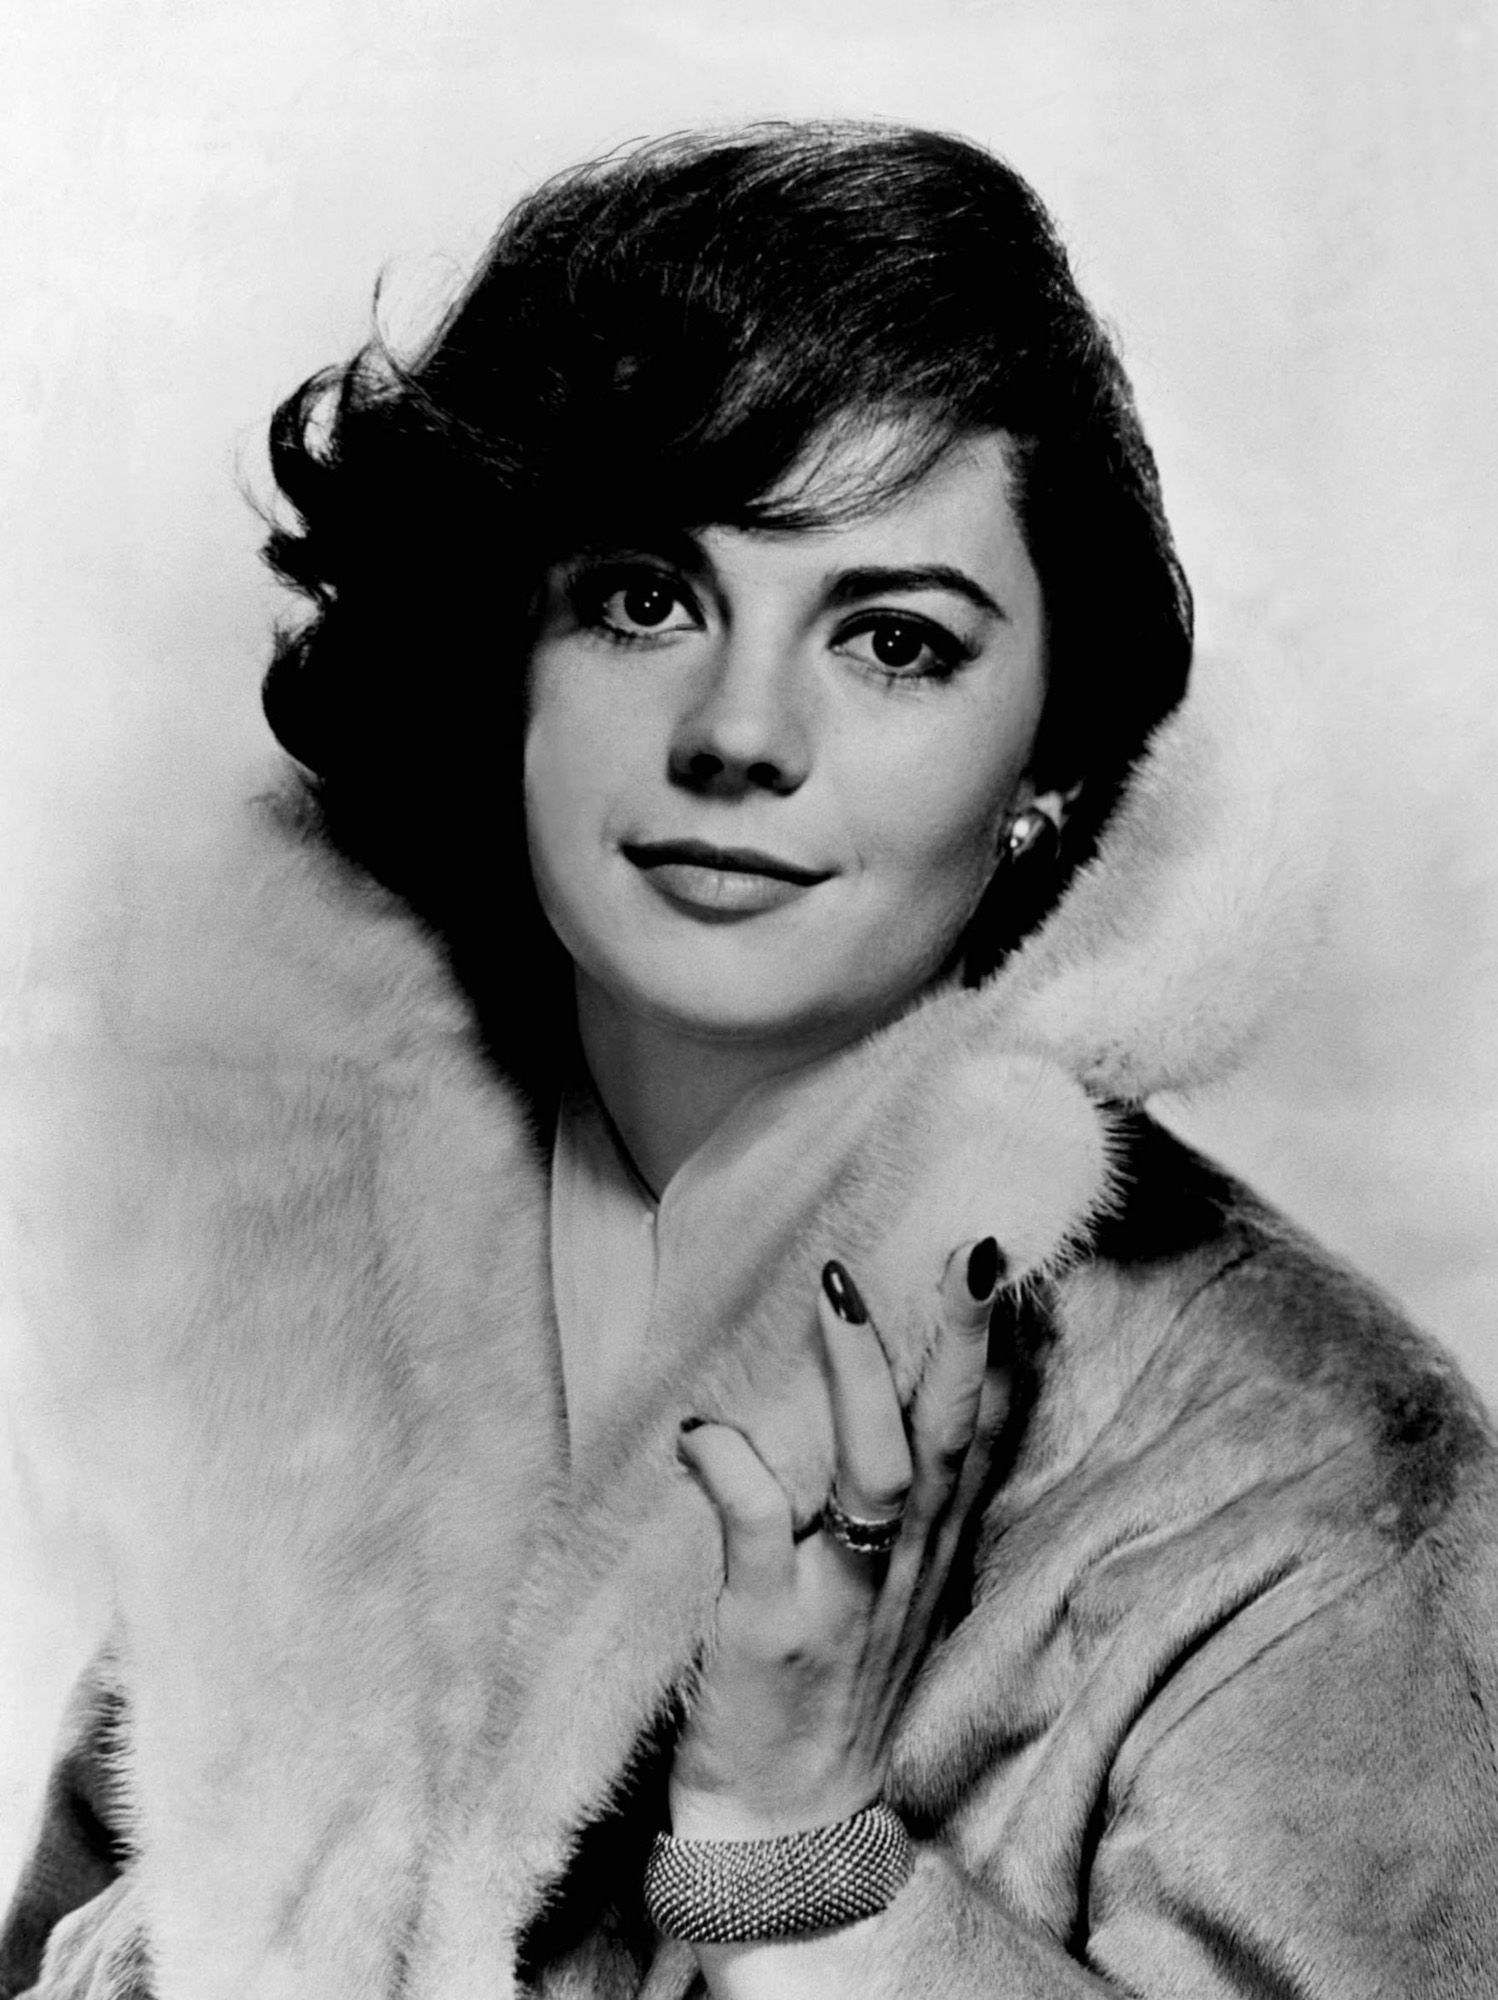 Pin by natalie on prom old hollywood pinterest - Natalie Wood She Was So Strikingly Beautiful Vintage Hollywoodhollywood